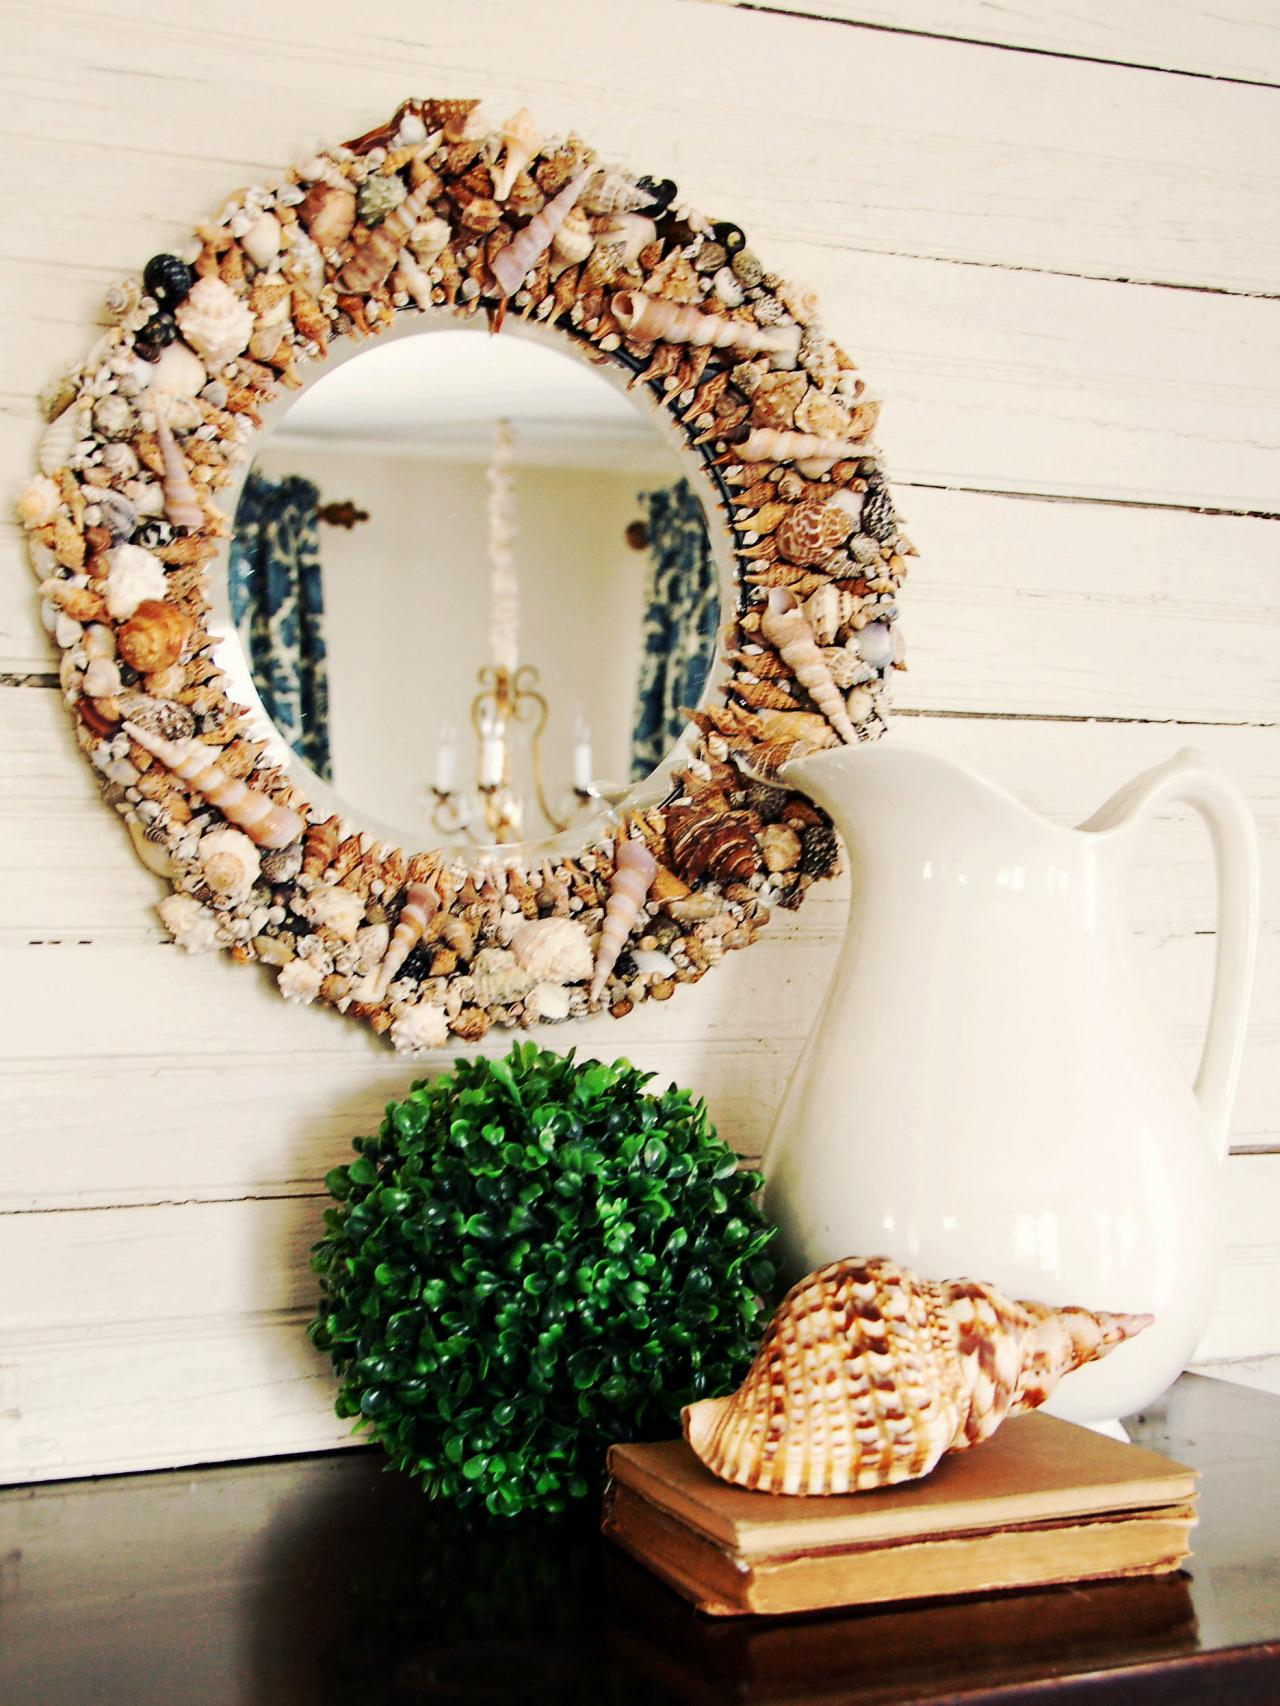 Preferred Seashell Wall Mirrors Throughout 23 Striking Shell Mirror Designs With Tutorials (View 10 of 20)